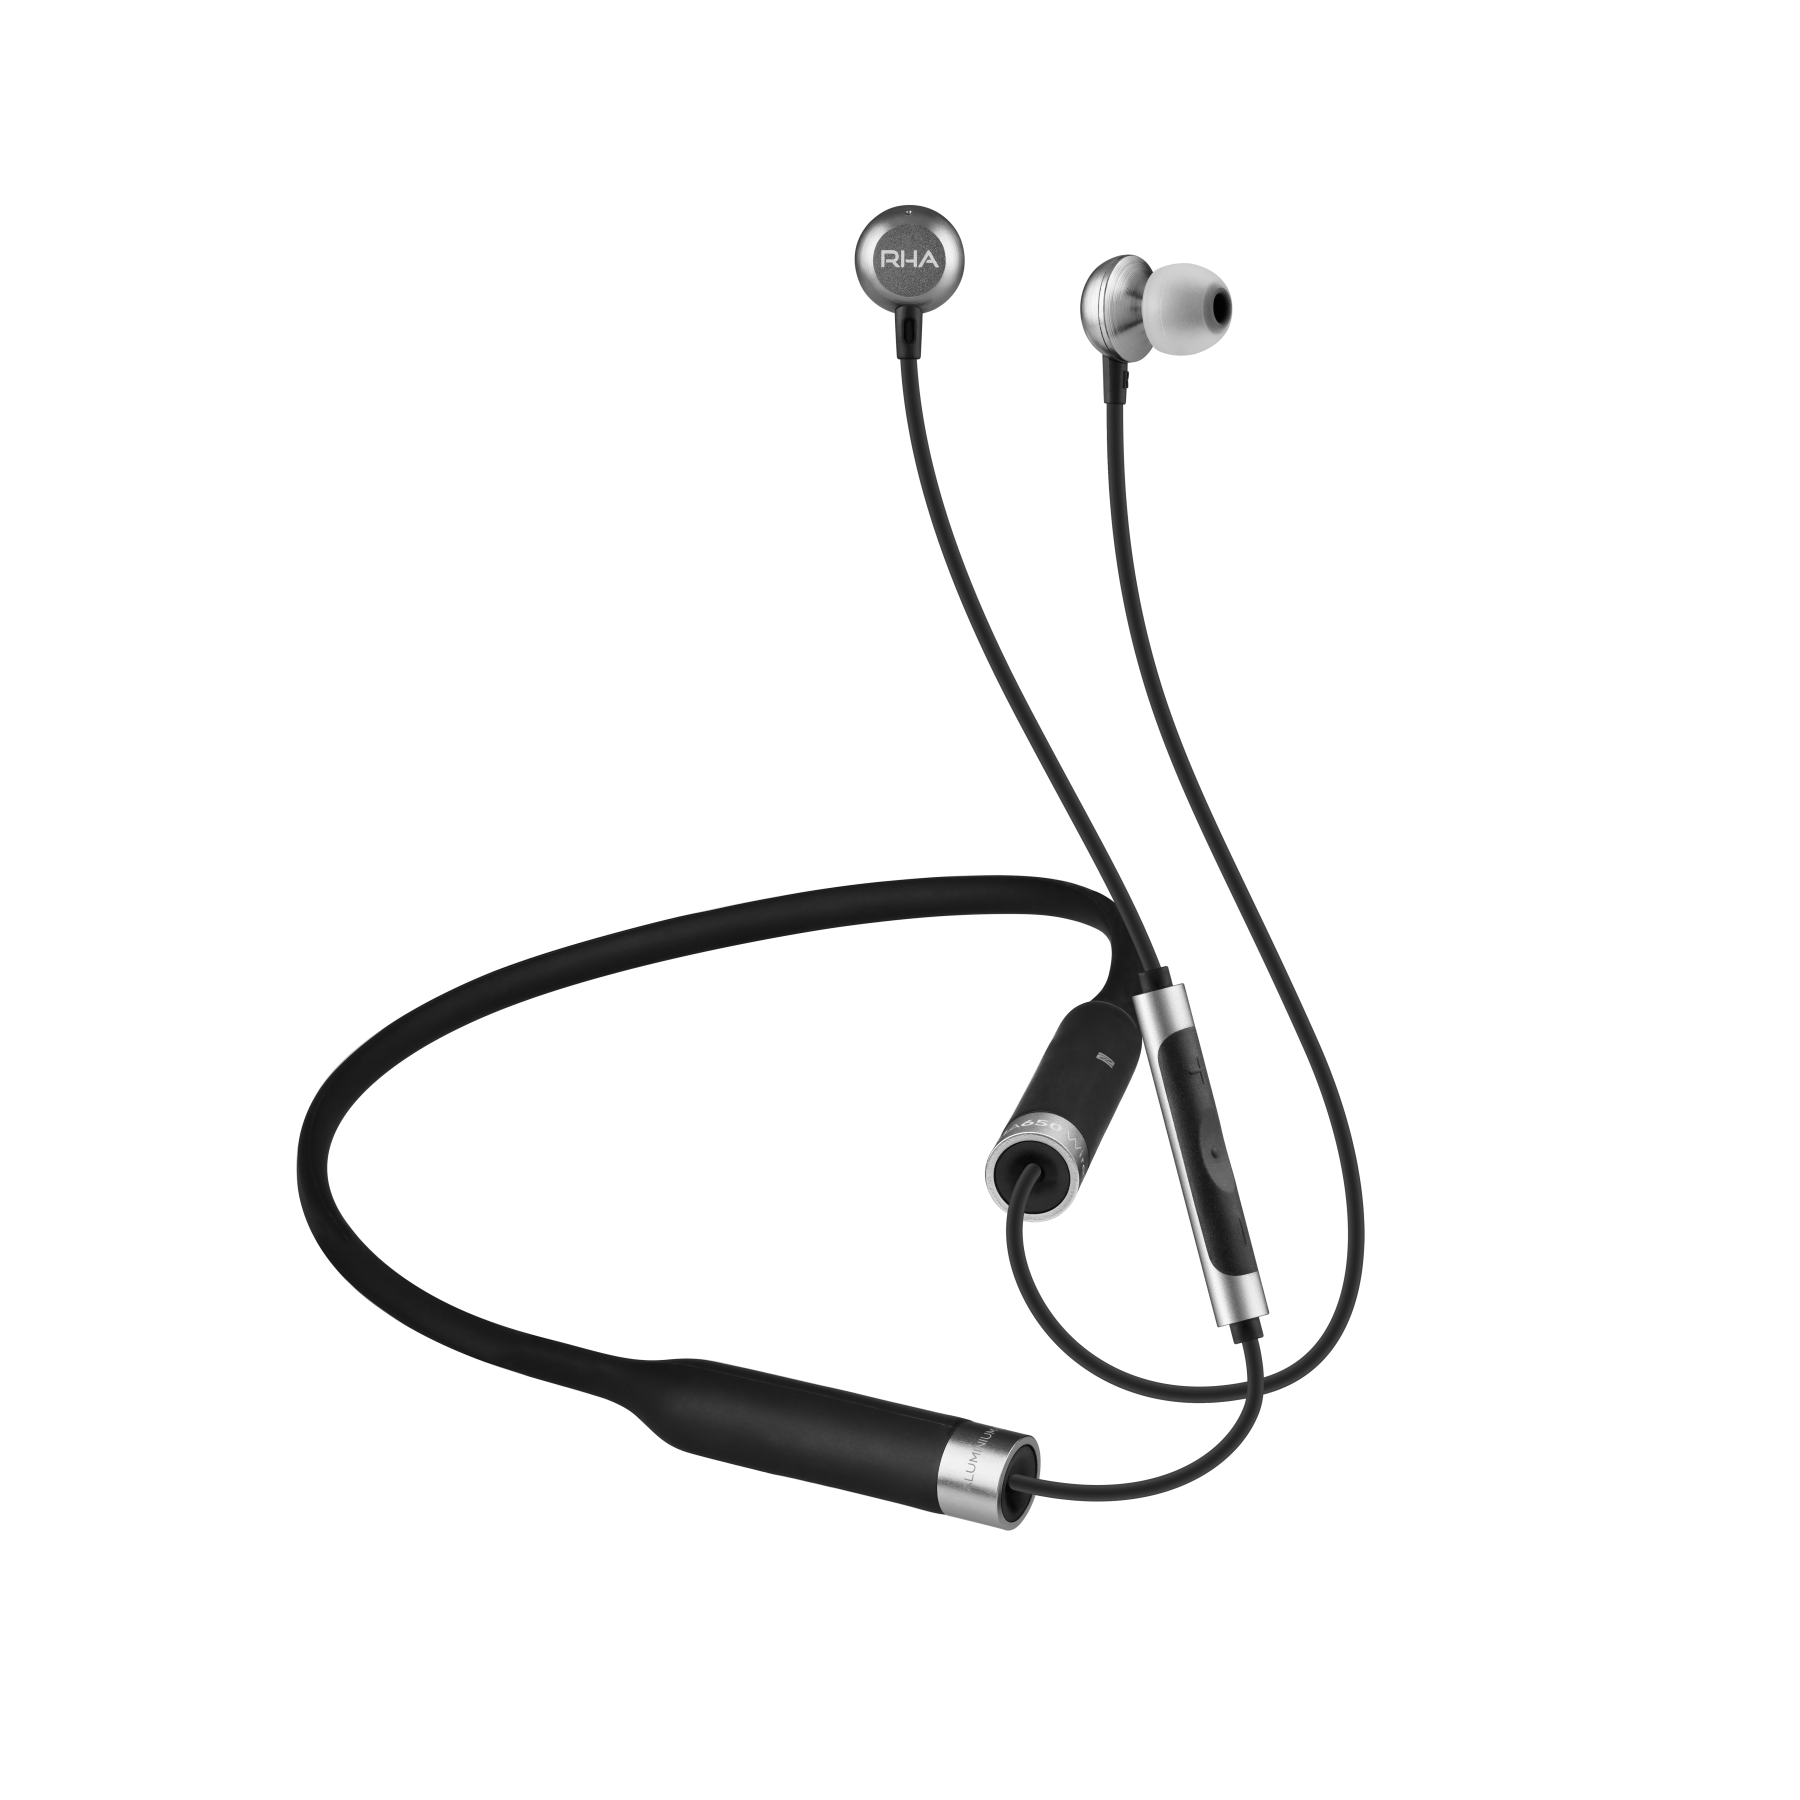 RHA MA650 Wireless